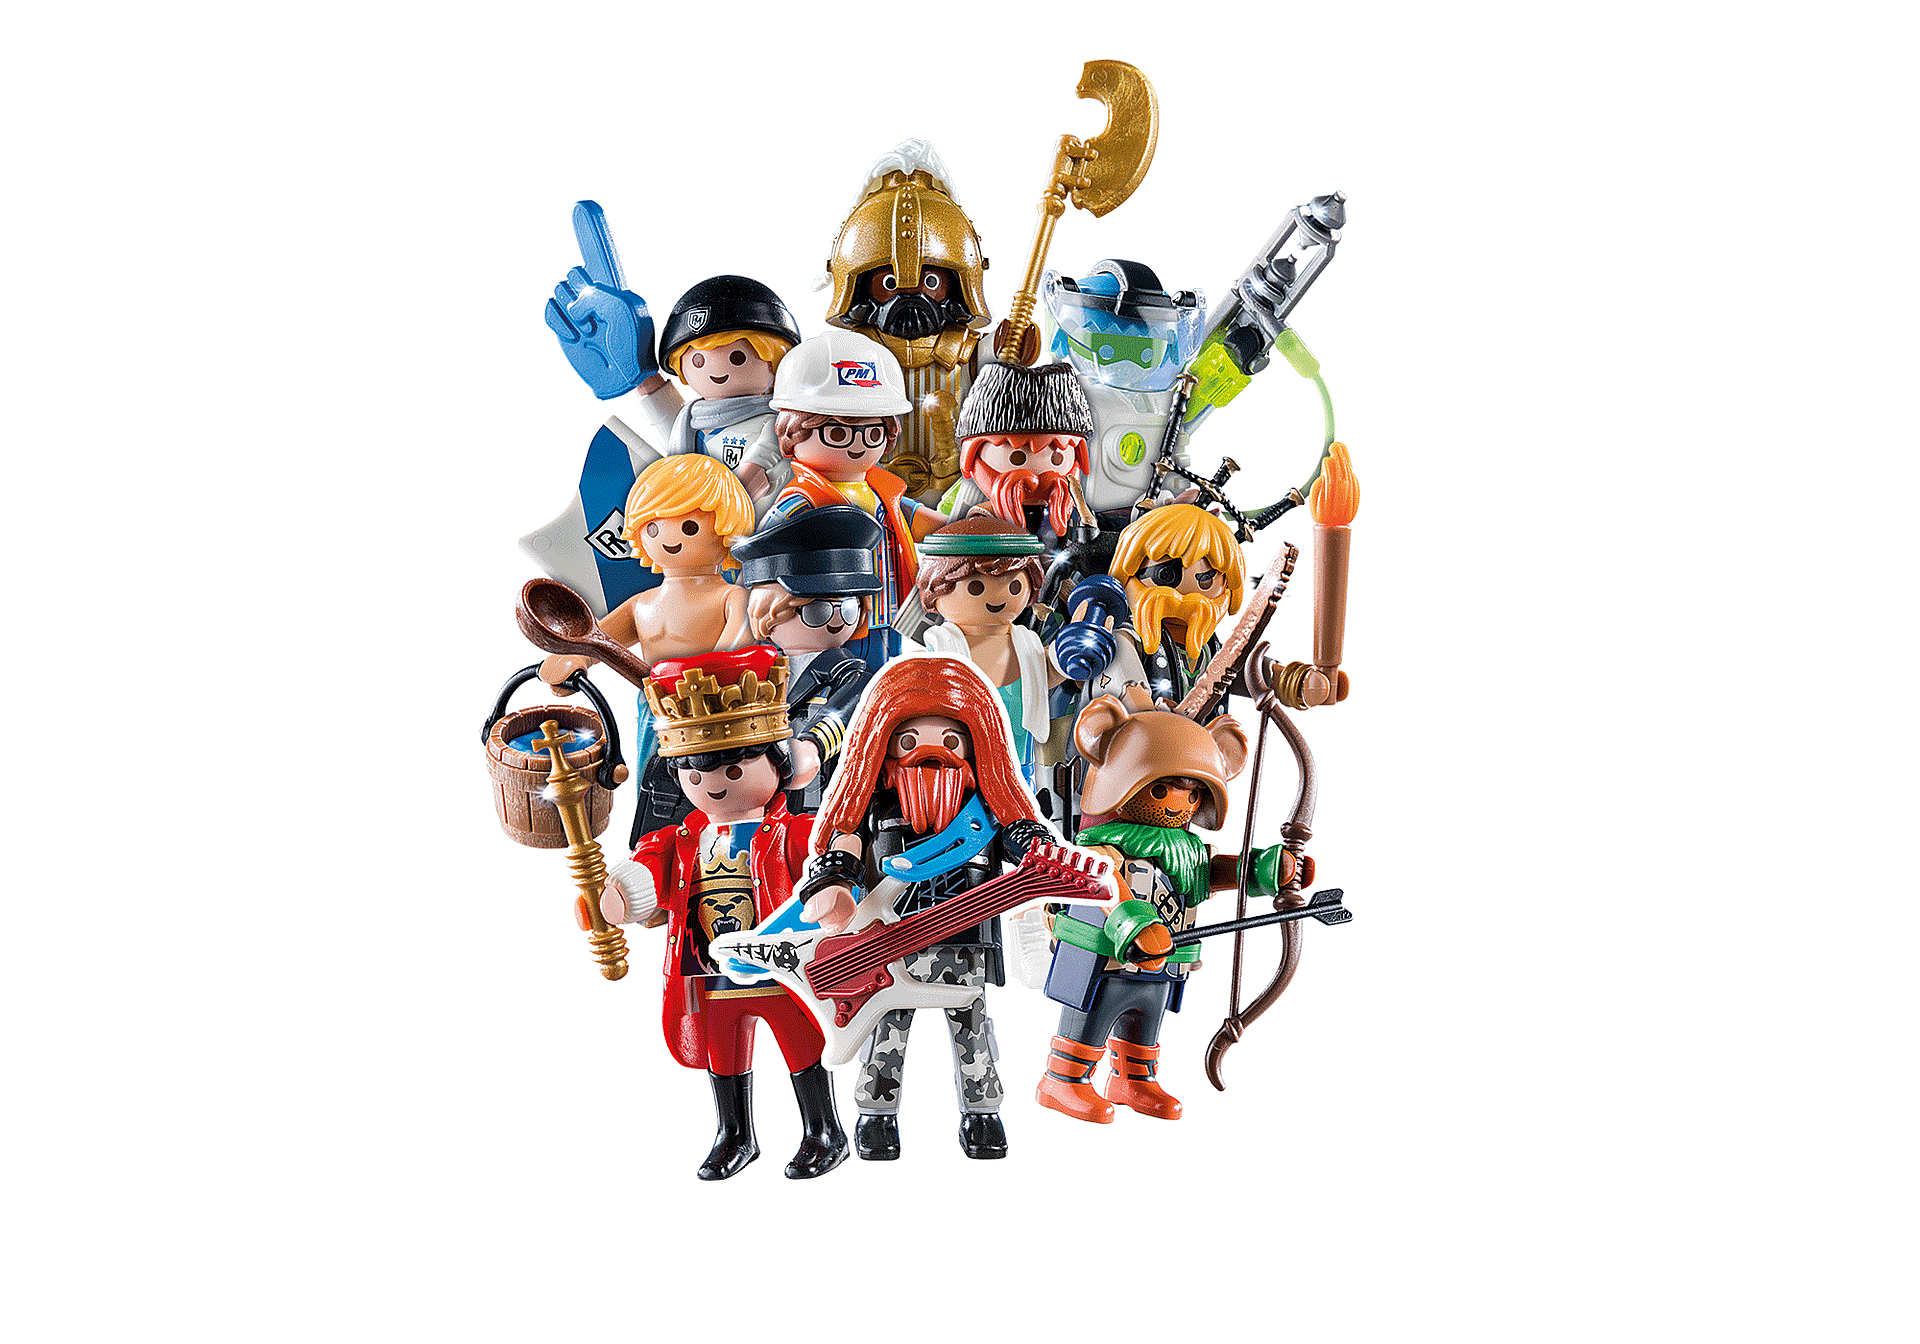 70369 PLAYMOBIL Figures Series 18 - Boys zoom image1